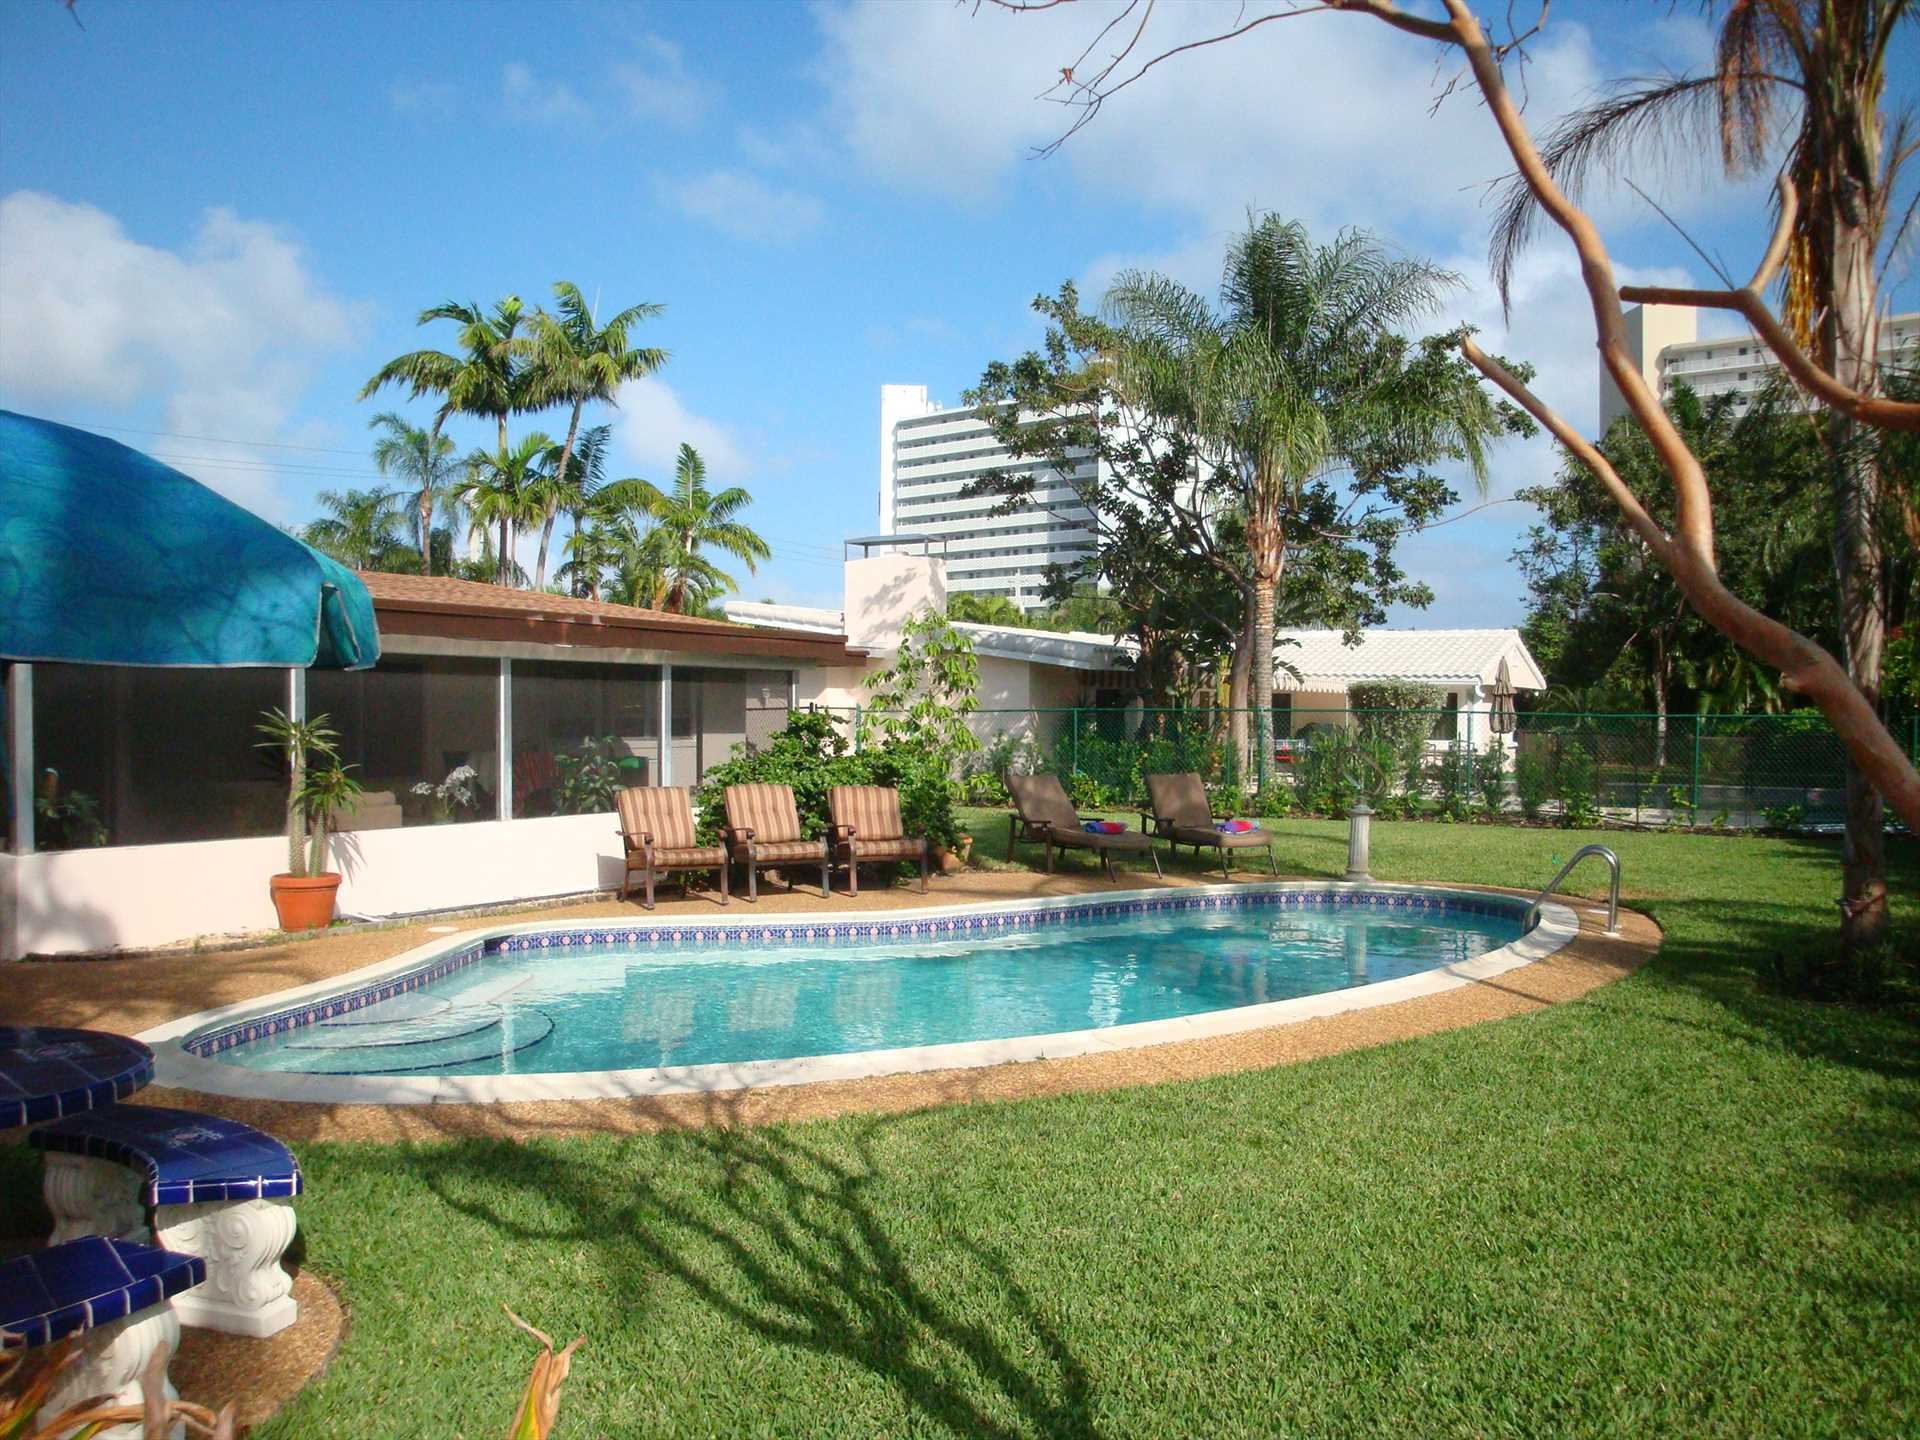 Pool area is surrounded by lush landscaping.